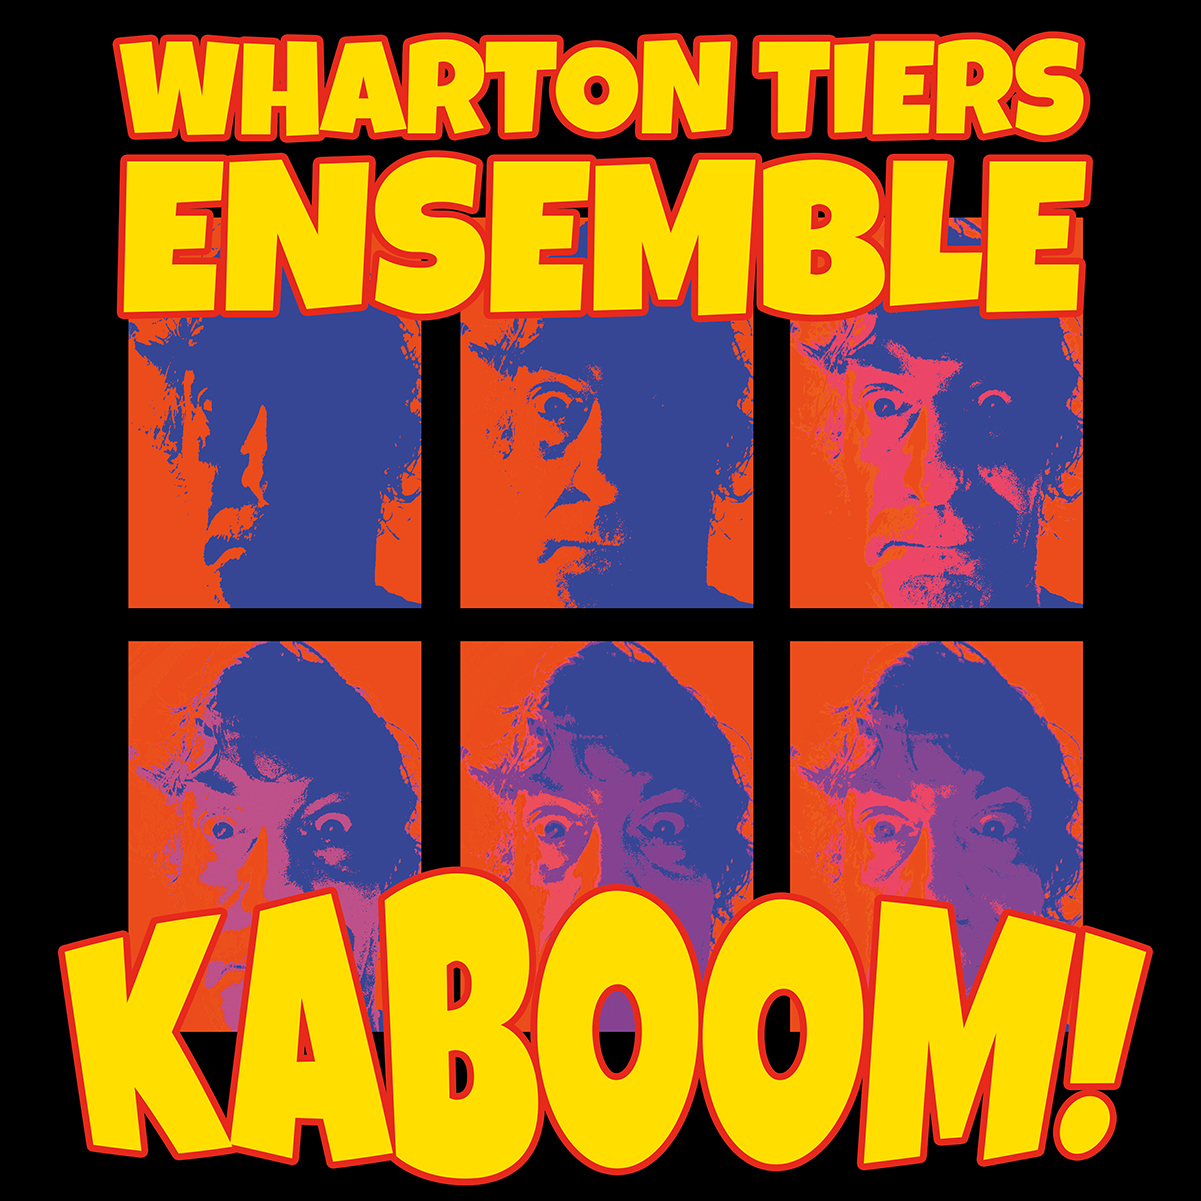 KABOOM! by Wharton Tiers Ensemble